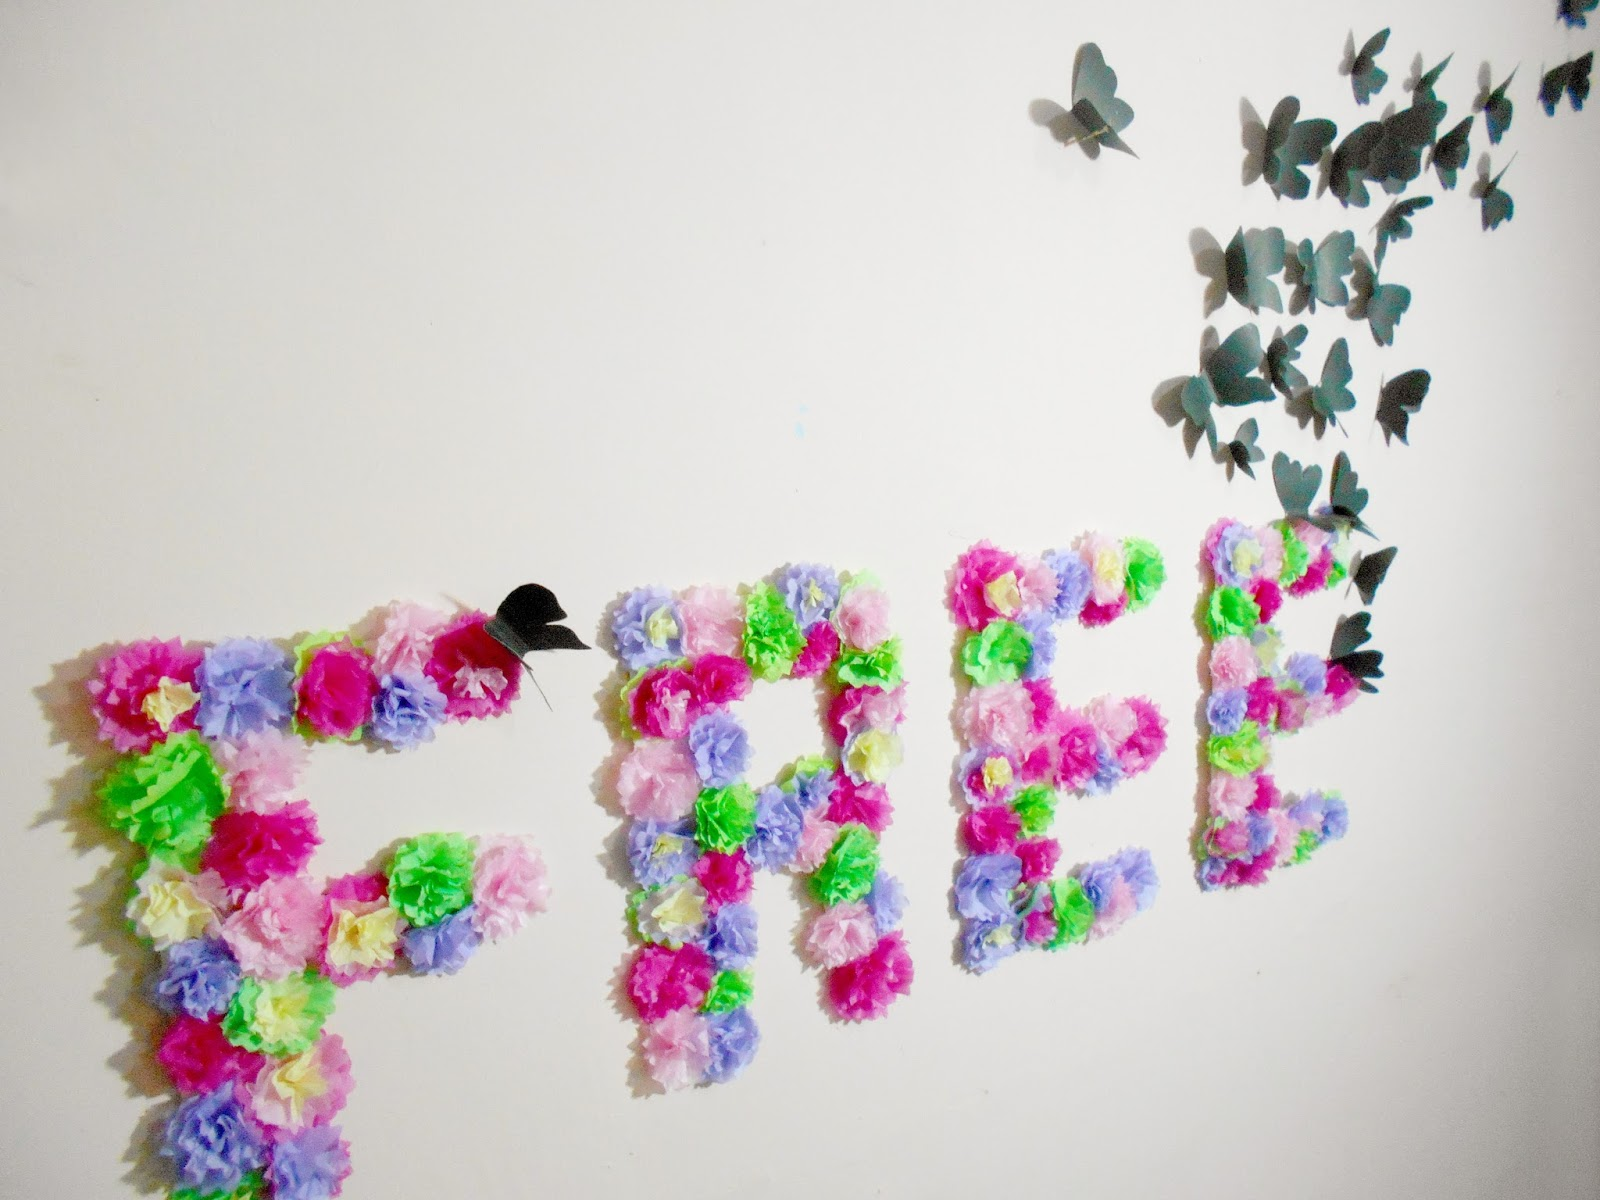 Diy paper flowers and butterflies wall art room decoration idea diy paper flowers and butterflies wall art mightylinksfo